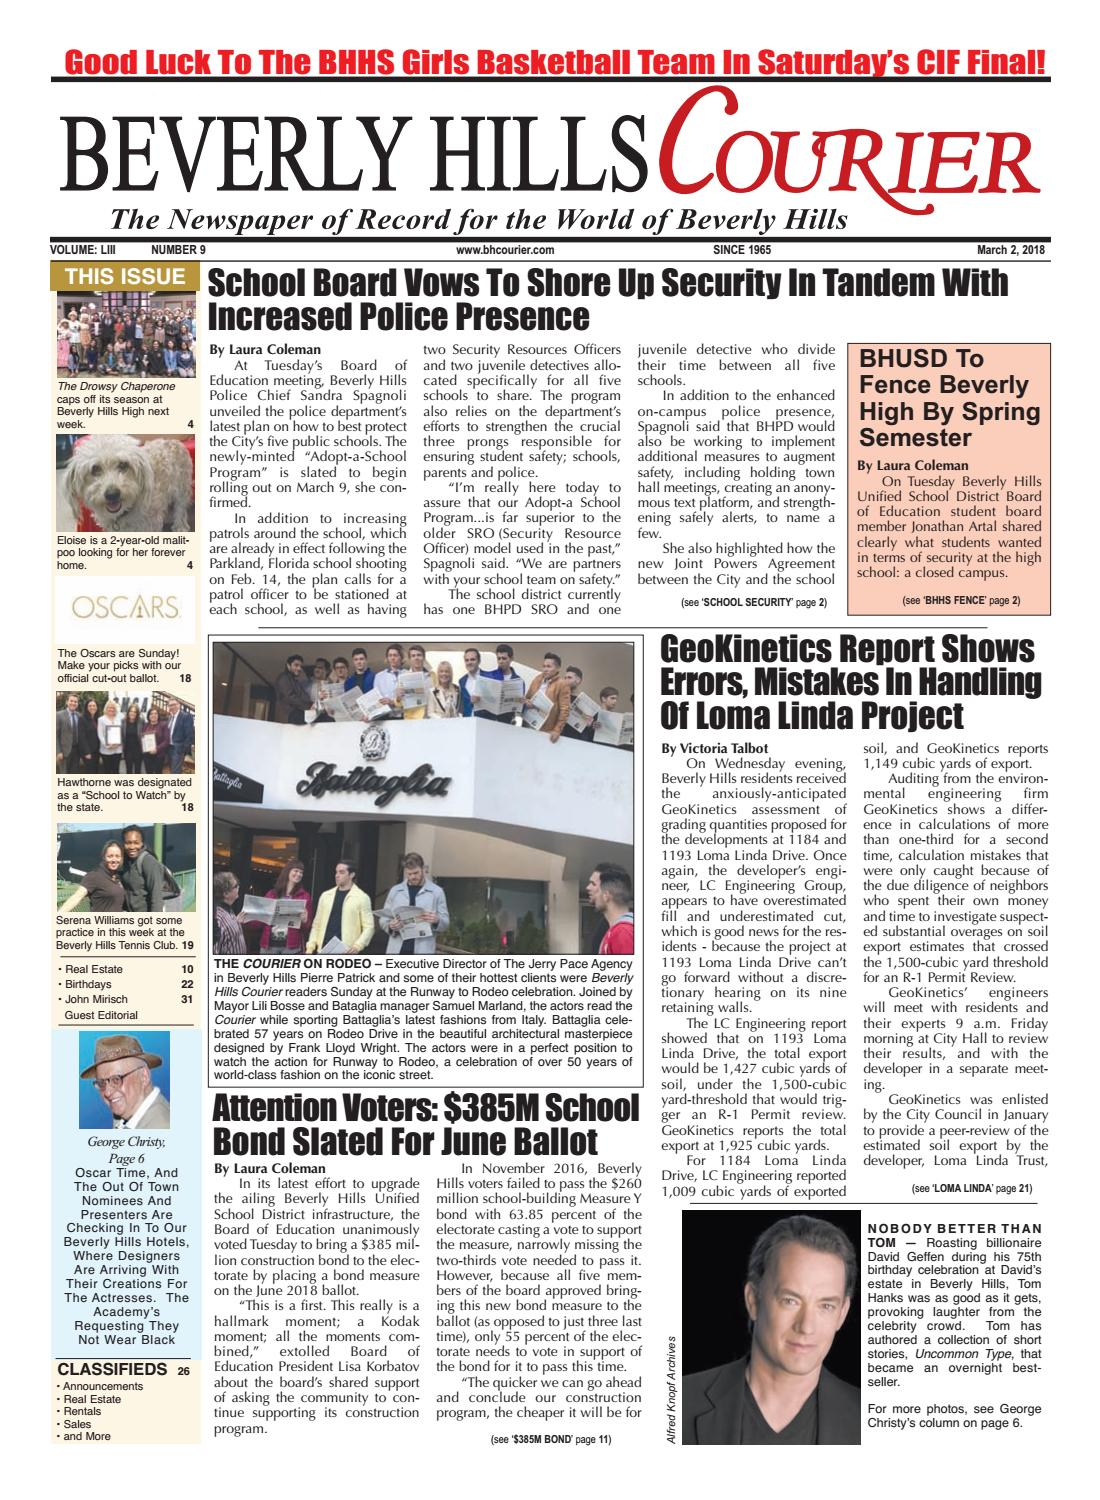 BHCourier E Edition 030218 By The Beverly Hills Courier   Issuu